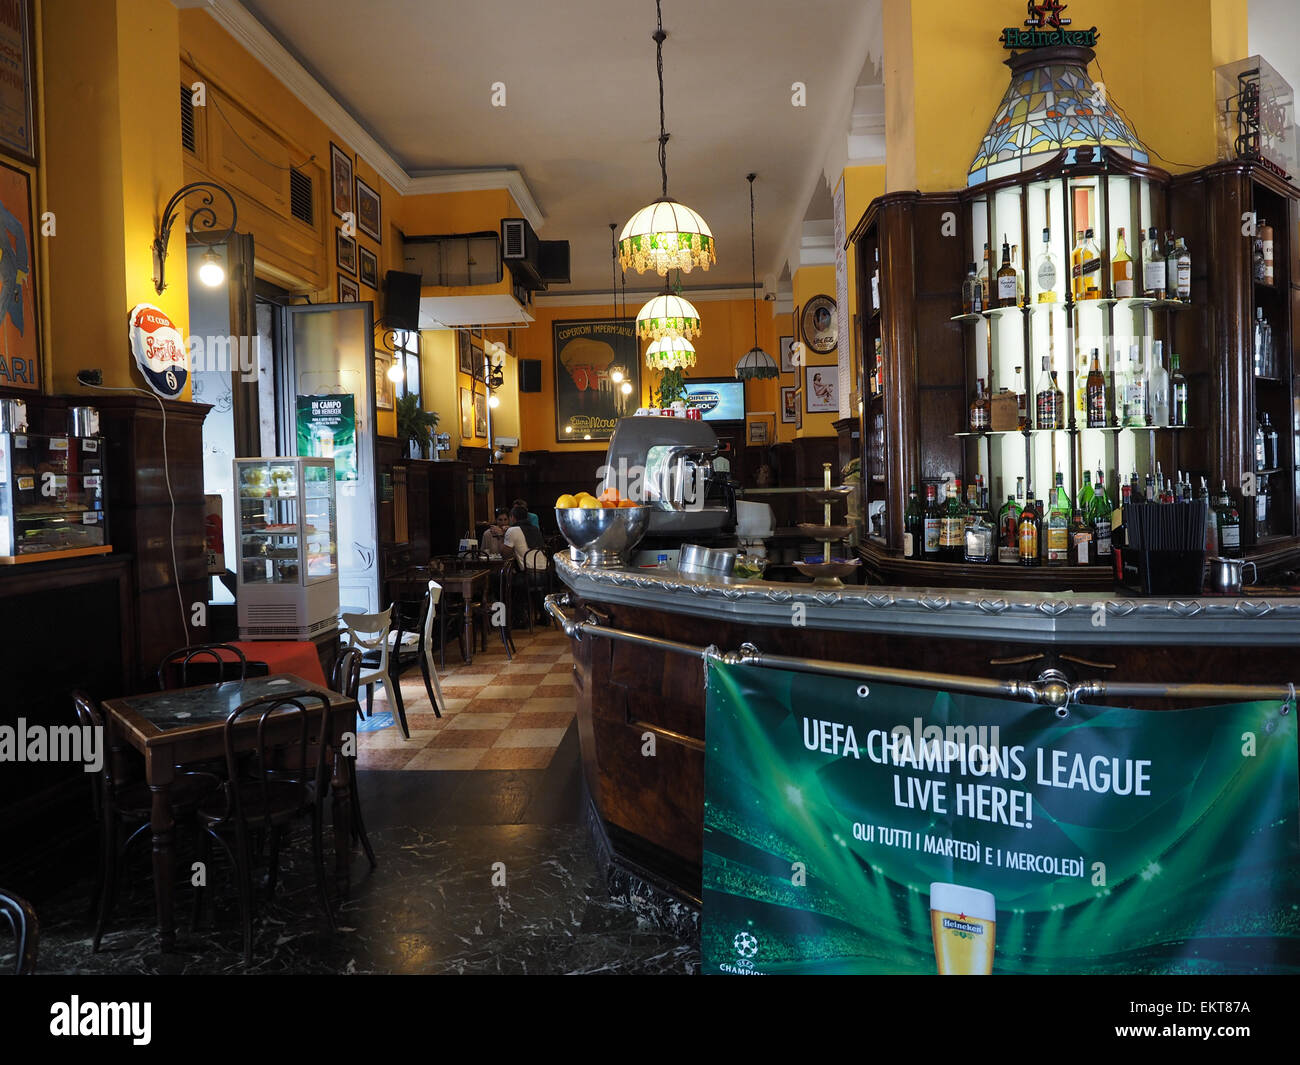 bar magenta stock photos & bar magenta stock images - alamy